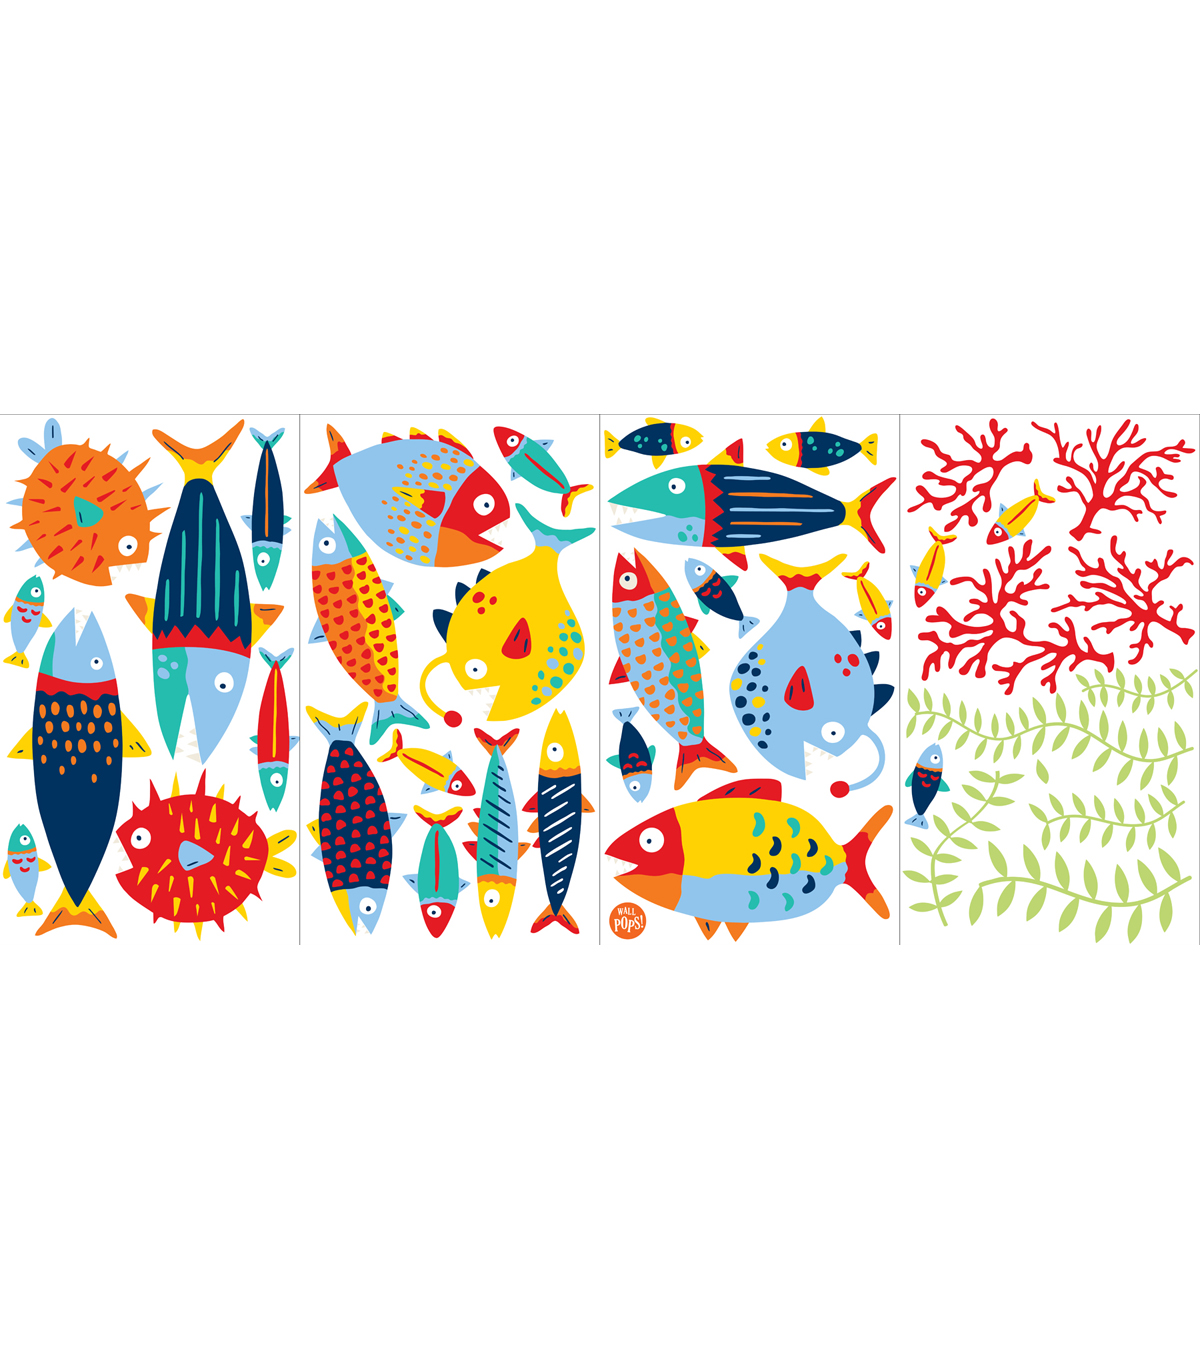 Wall Pops Fish Tales Wall Art Decal Kit, 38 Piece Set